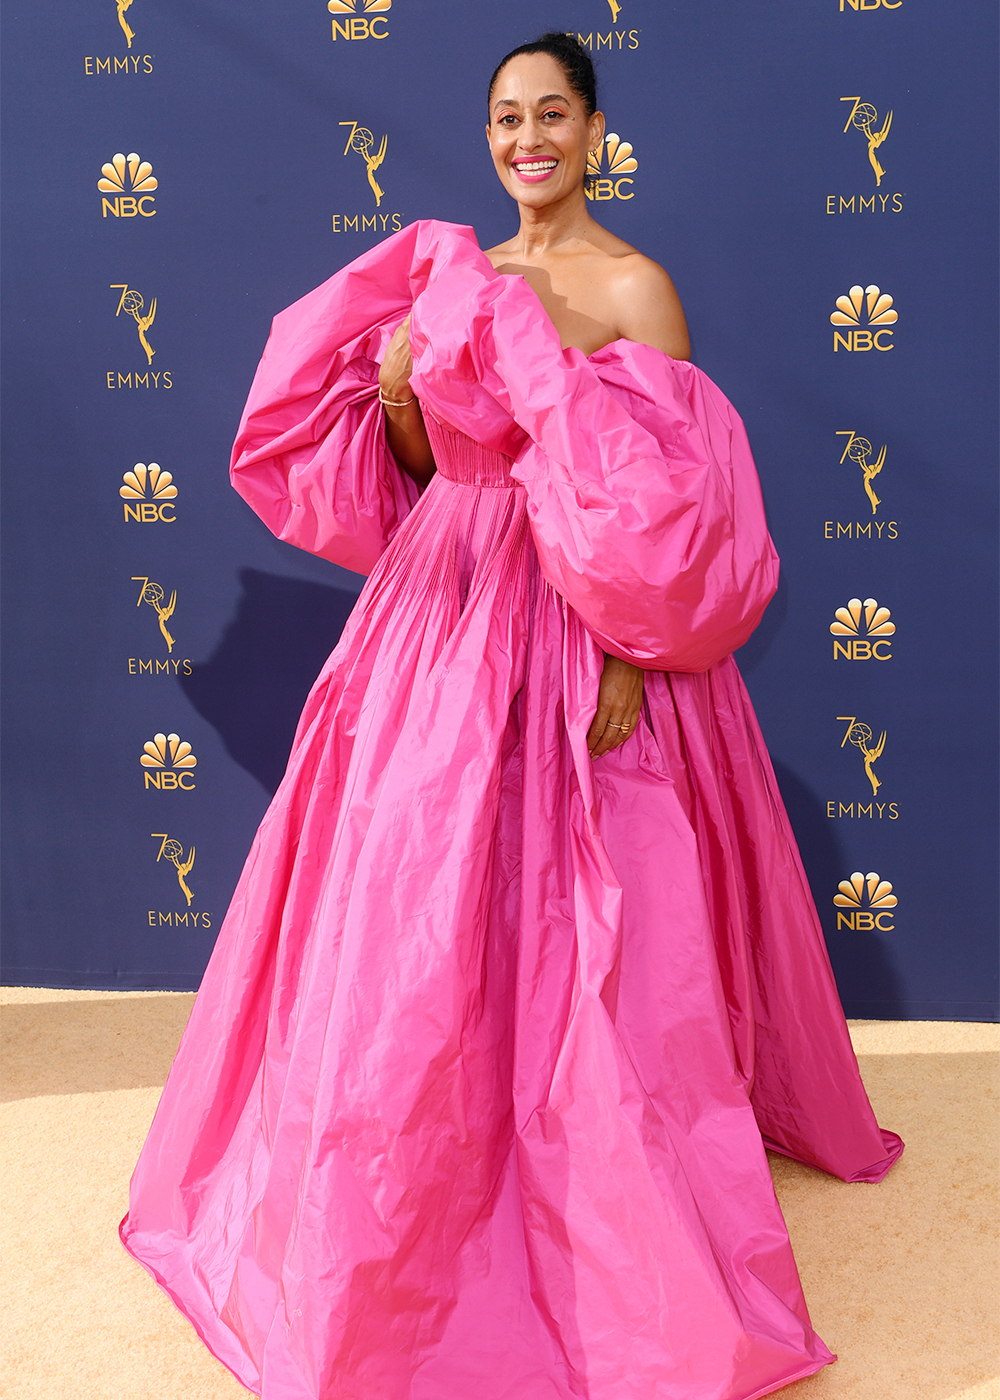 2018 Best Dressed Emmys I Tracee Ellis Ross in Valentino #BestDressed #Emmys #RedCarpet #Fashionista #Valentino